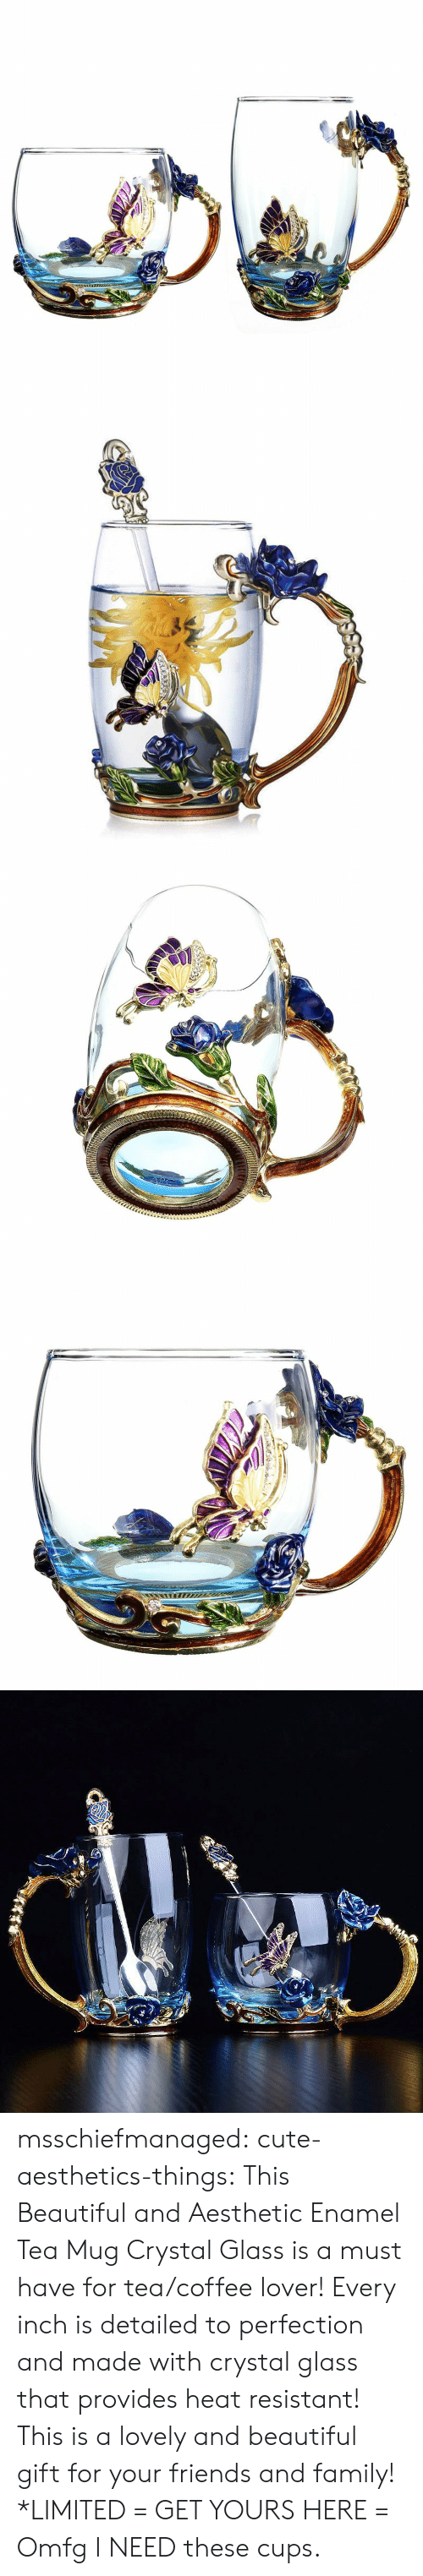 Beautiful, Cute, and Family: msschiefmanaged: cute-aesthetics-things:  This Beautiful and AestheticEnamel Tea Mug Crystal Glass is a must have for tea/coffee lover! Every inch is detailed to perfection and made with crystal glass that provides heat resistant! This is a lovely and beautiful gift for your friends and family! *LIMITED = GET YOURS HERE =   Omfg I NEED these cups.